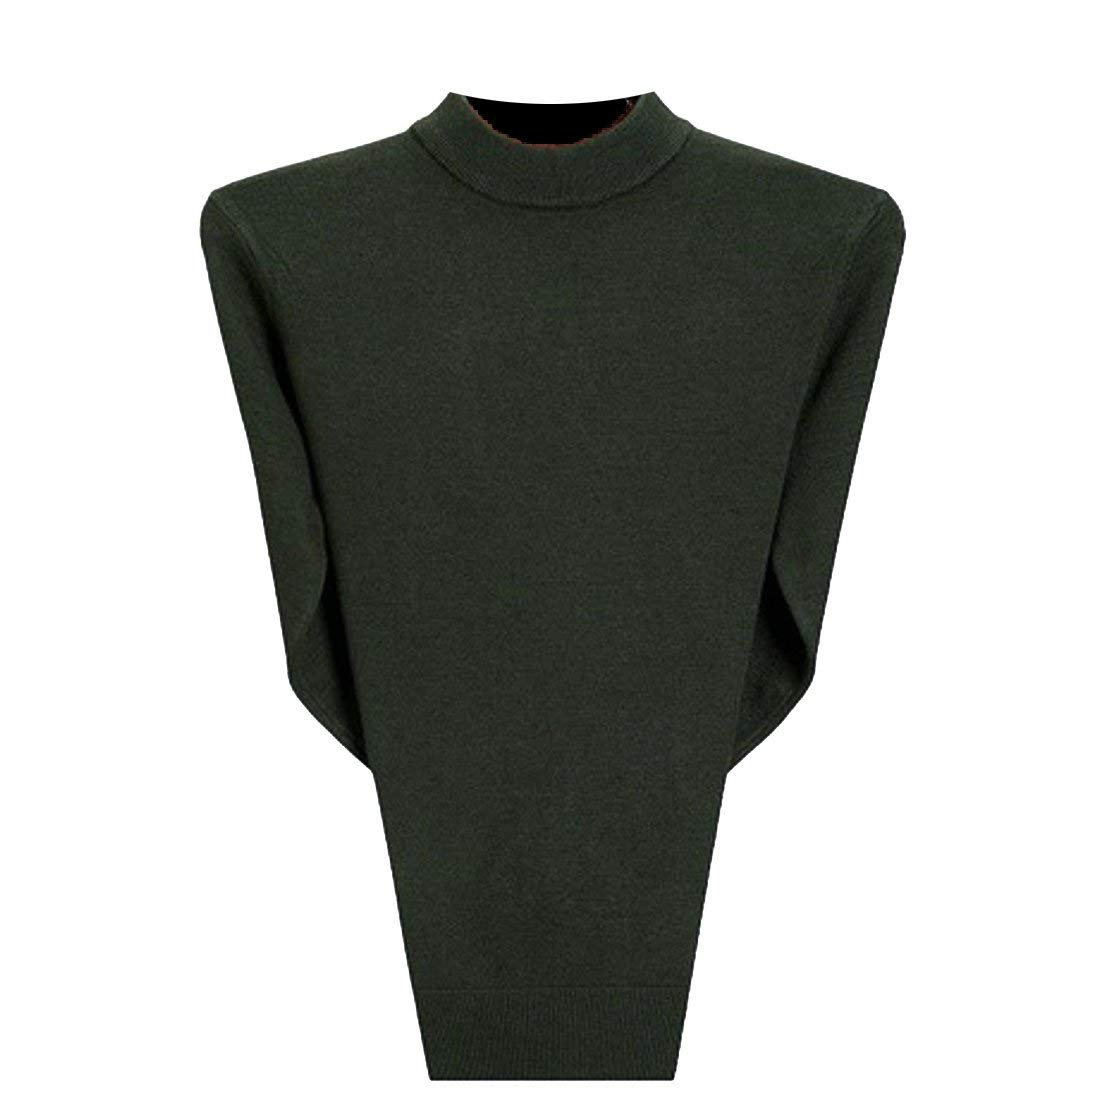 BU2H Men Plus Size Plus Size Autumn Half Turtleneck Solid Slim Wool Knitwear Pullover Sweater